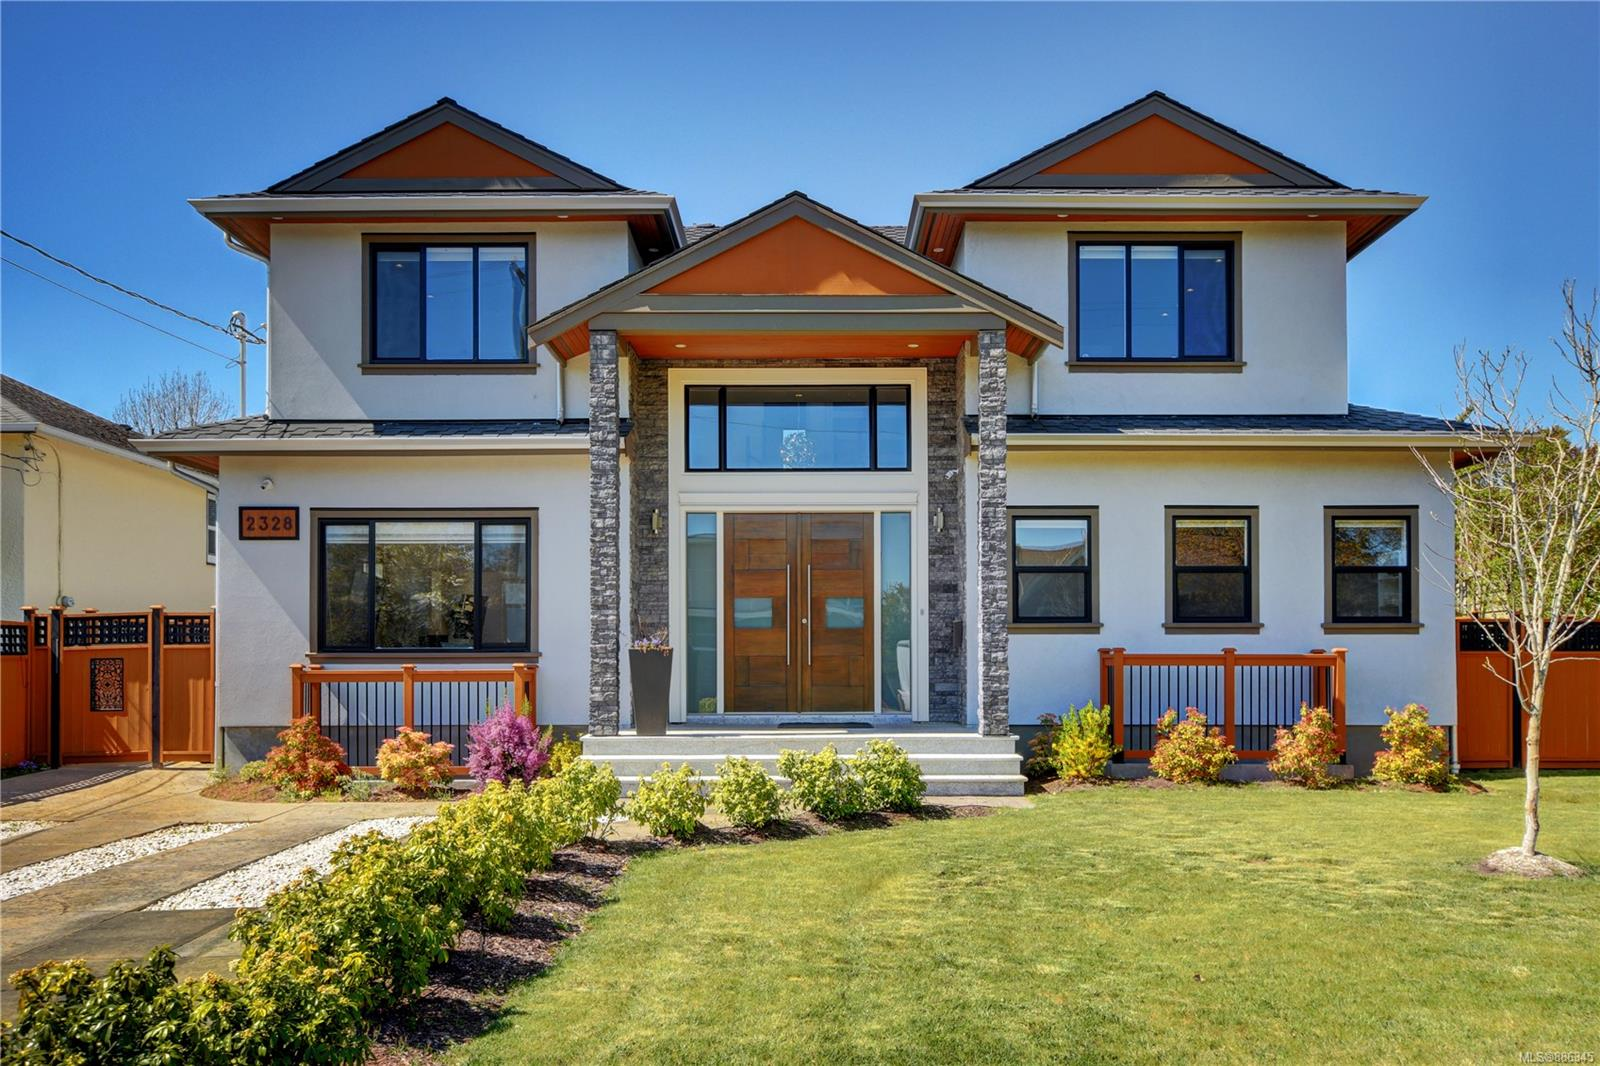 Welcome to 2328 Dunlevy st ! Centrally located at Oak Bay - Estevan.  Minutes walk to the shops & cafes of Oak Bay and Estevan Villages & easy access to Willows Beach. This Gorgeous home were built back in the End of 2018 with quality craftmanship. Main level features 4 pc en-suite (can be nanny room, office, guest bedroom) open concept family dinning area, Gourmet kitchen with high end commercial grade stainless steel appliances. Enjoy the sunshine with this west facing garden, sitting on this great size of patio (approx 600 sqft. ) with outdoor kitchen along with beautiful landscaped garden plus an amazing water feature. Upper level contains dual Master bedrooms with SPA like bathrooms and a spacious ensuite with 4 pc bath. Lower level comes with great Recreation room(pre wired for speakers and projector ) and separate guest bedroom (3 pc ensuite), Wine Cellar/storage.  This home is a must see. All measurement approx. verify by buyer if important. *** Seller is a licensed realtor.